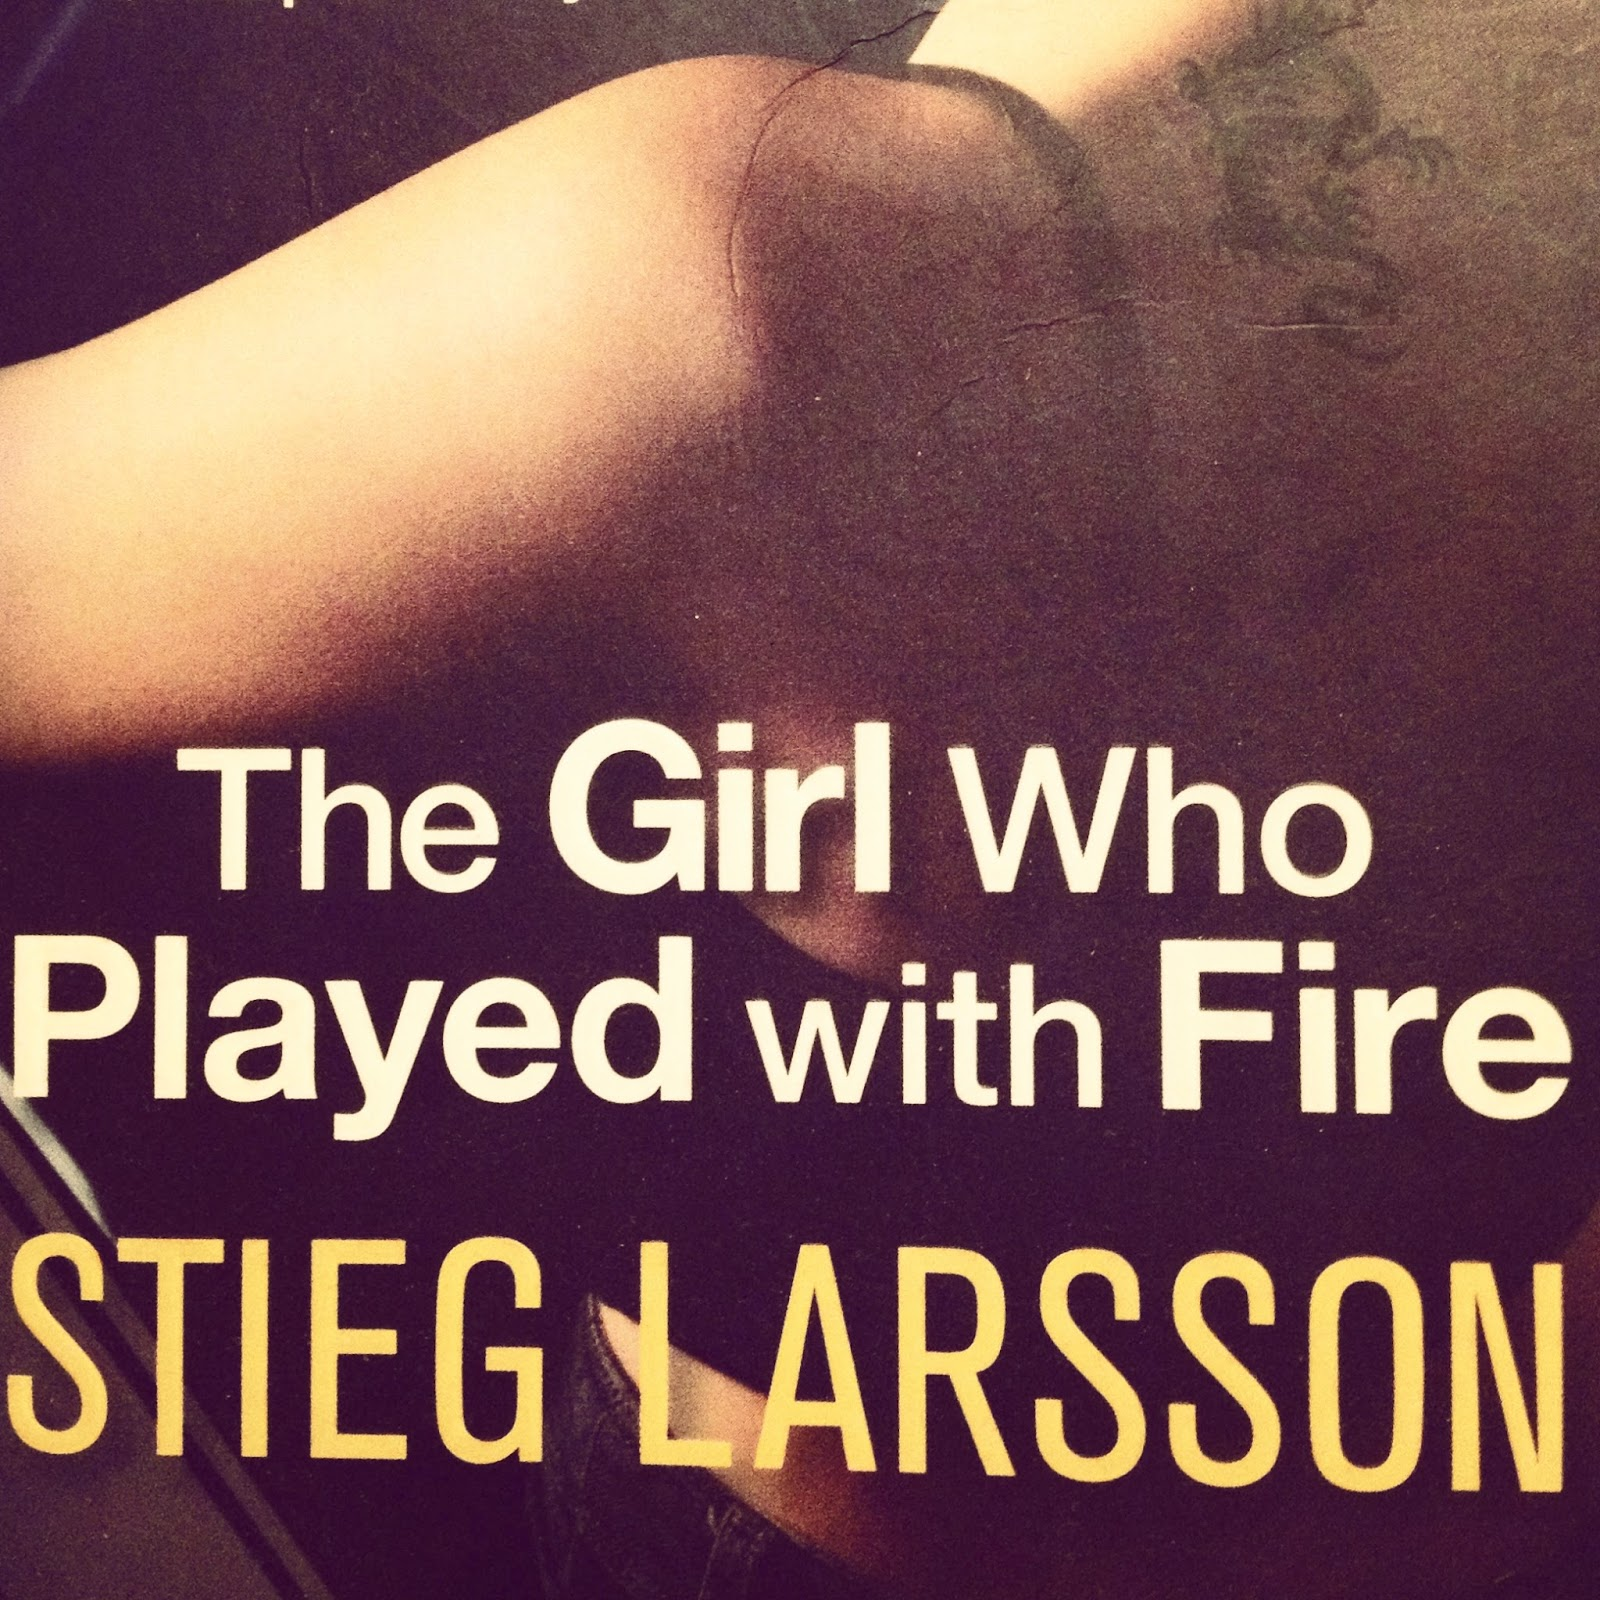 The Girl Who Played With Fire - Book Reviews 2014 | Crappy Candle